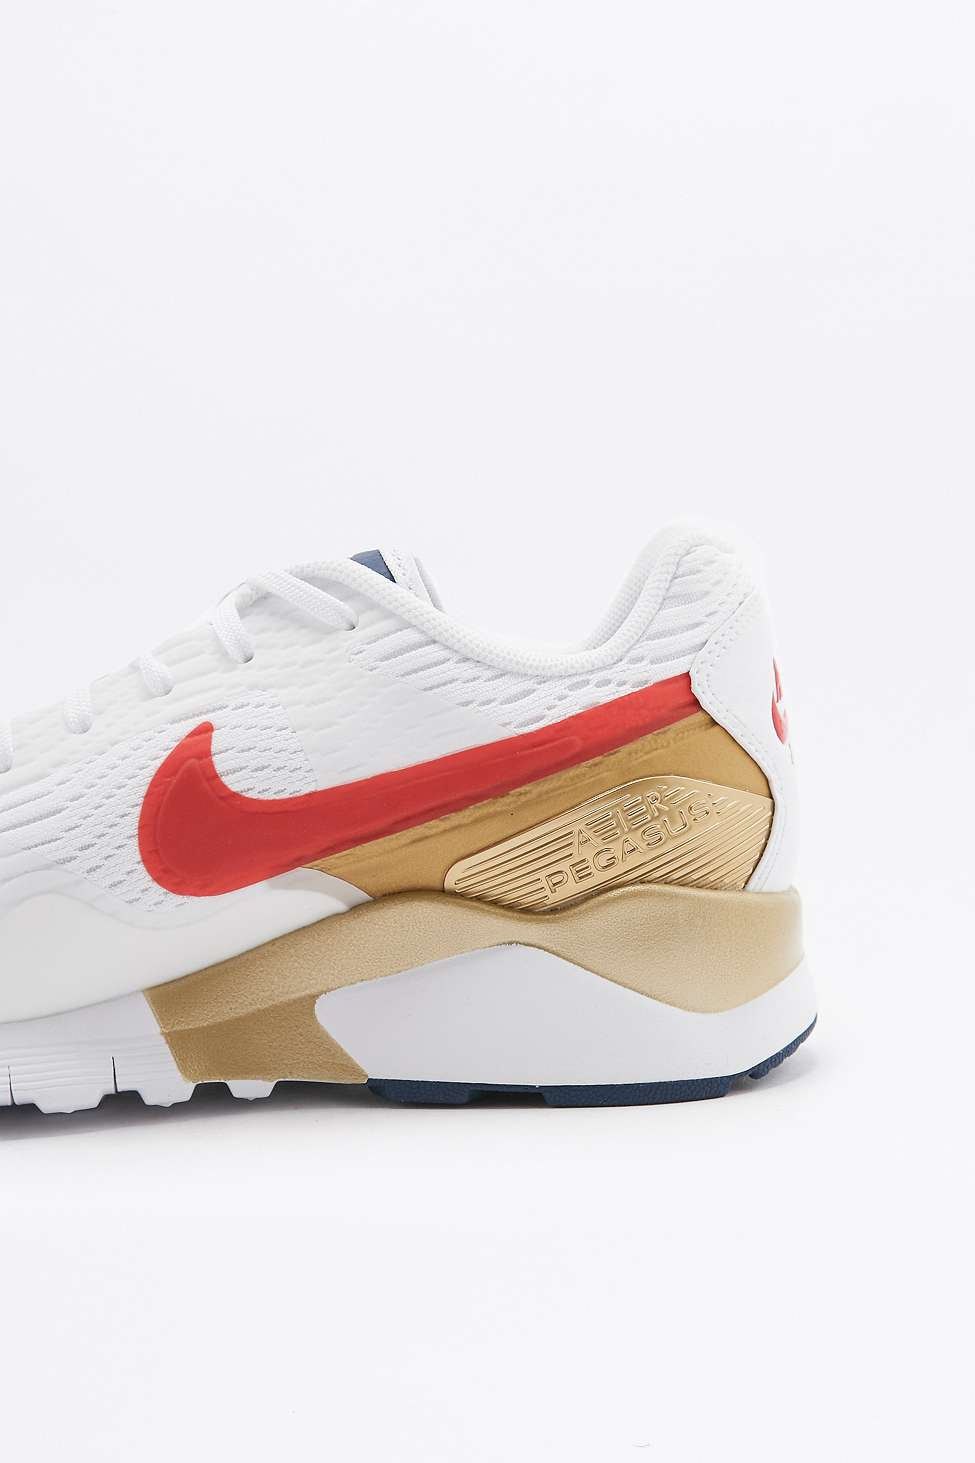 differently b8cf9 9bdf0 ... Nike Air Pegasus 92 Red Gold and Blue Trainers 3 ...